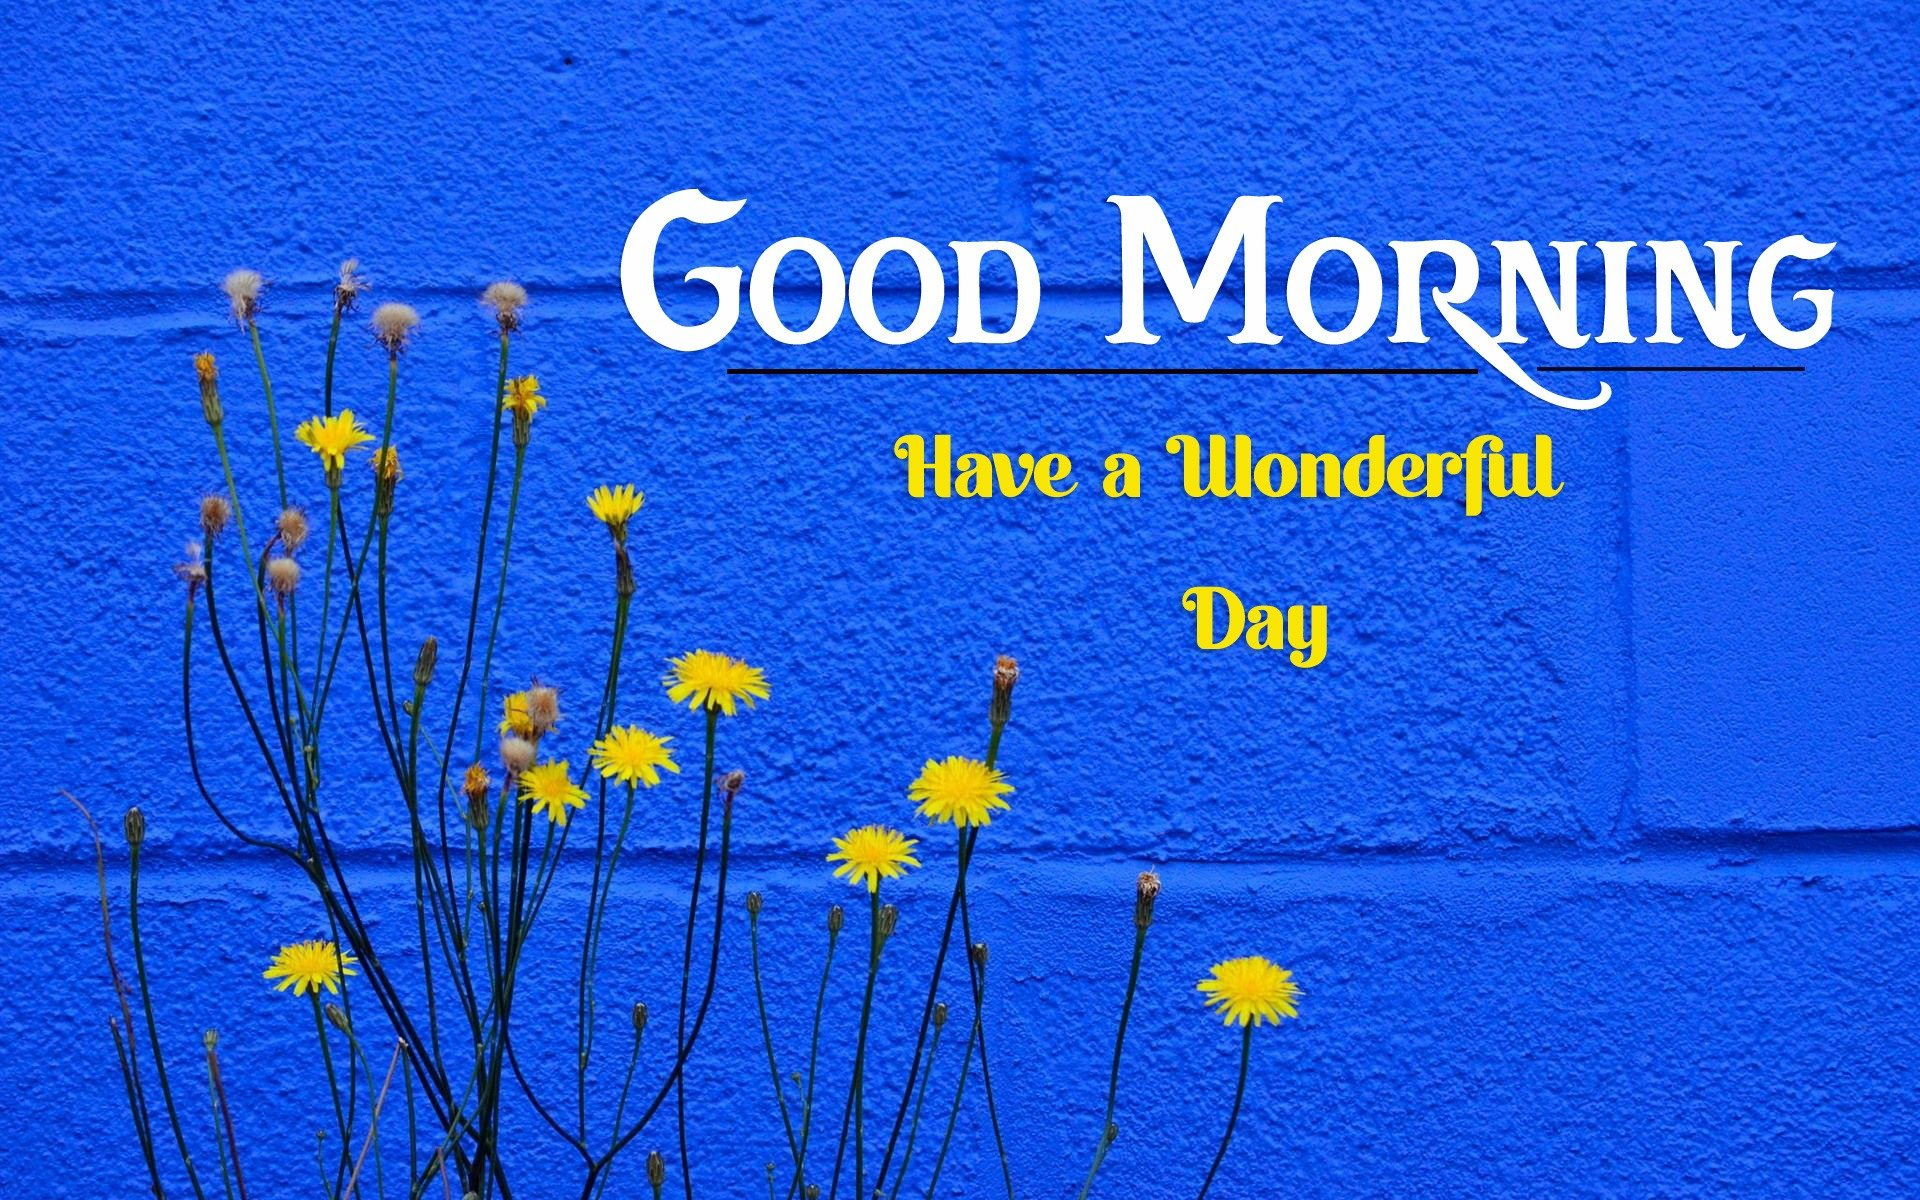 new good morning images pics hd download